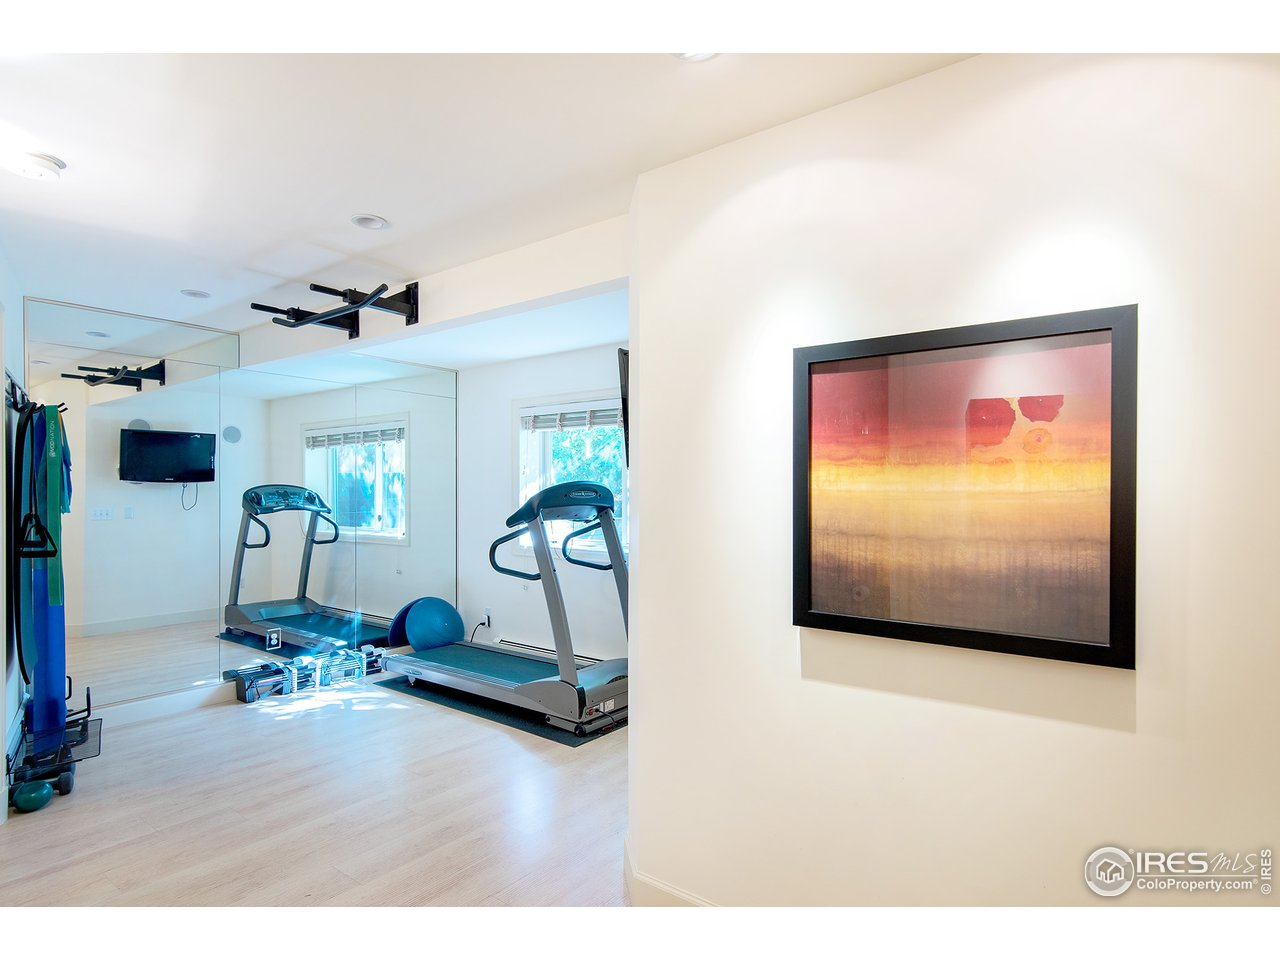 Time to work it off in the exercise room!